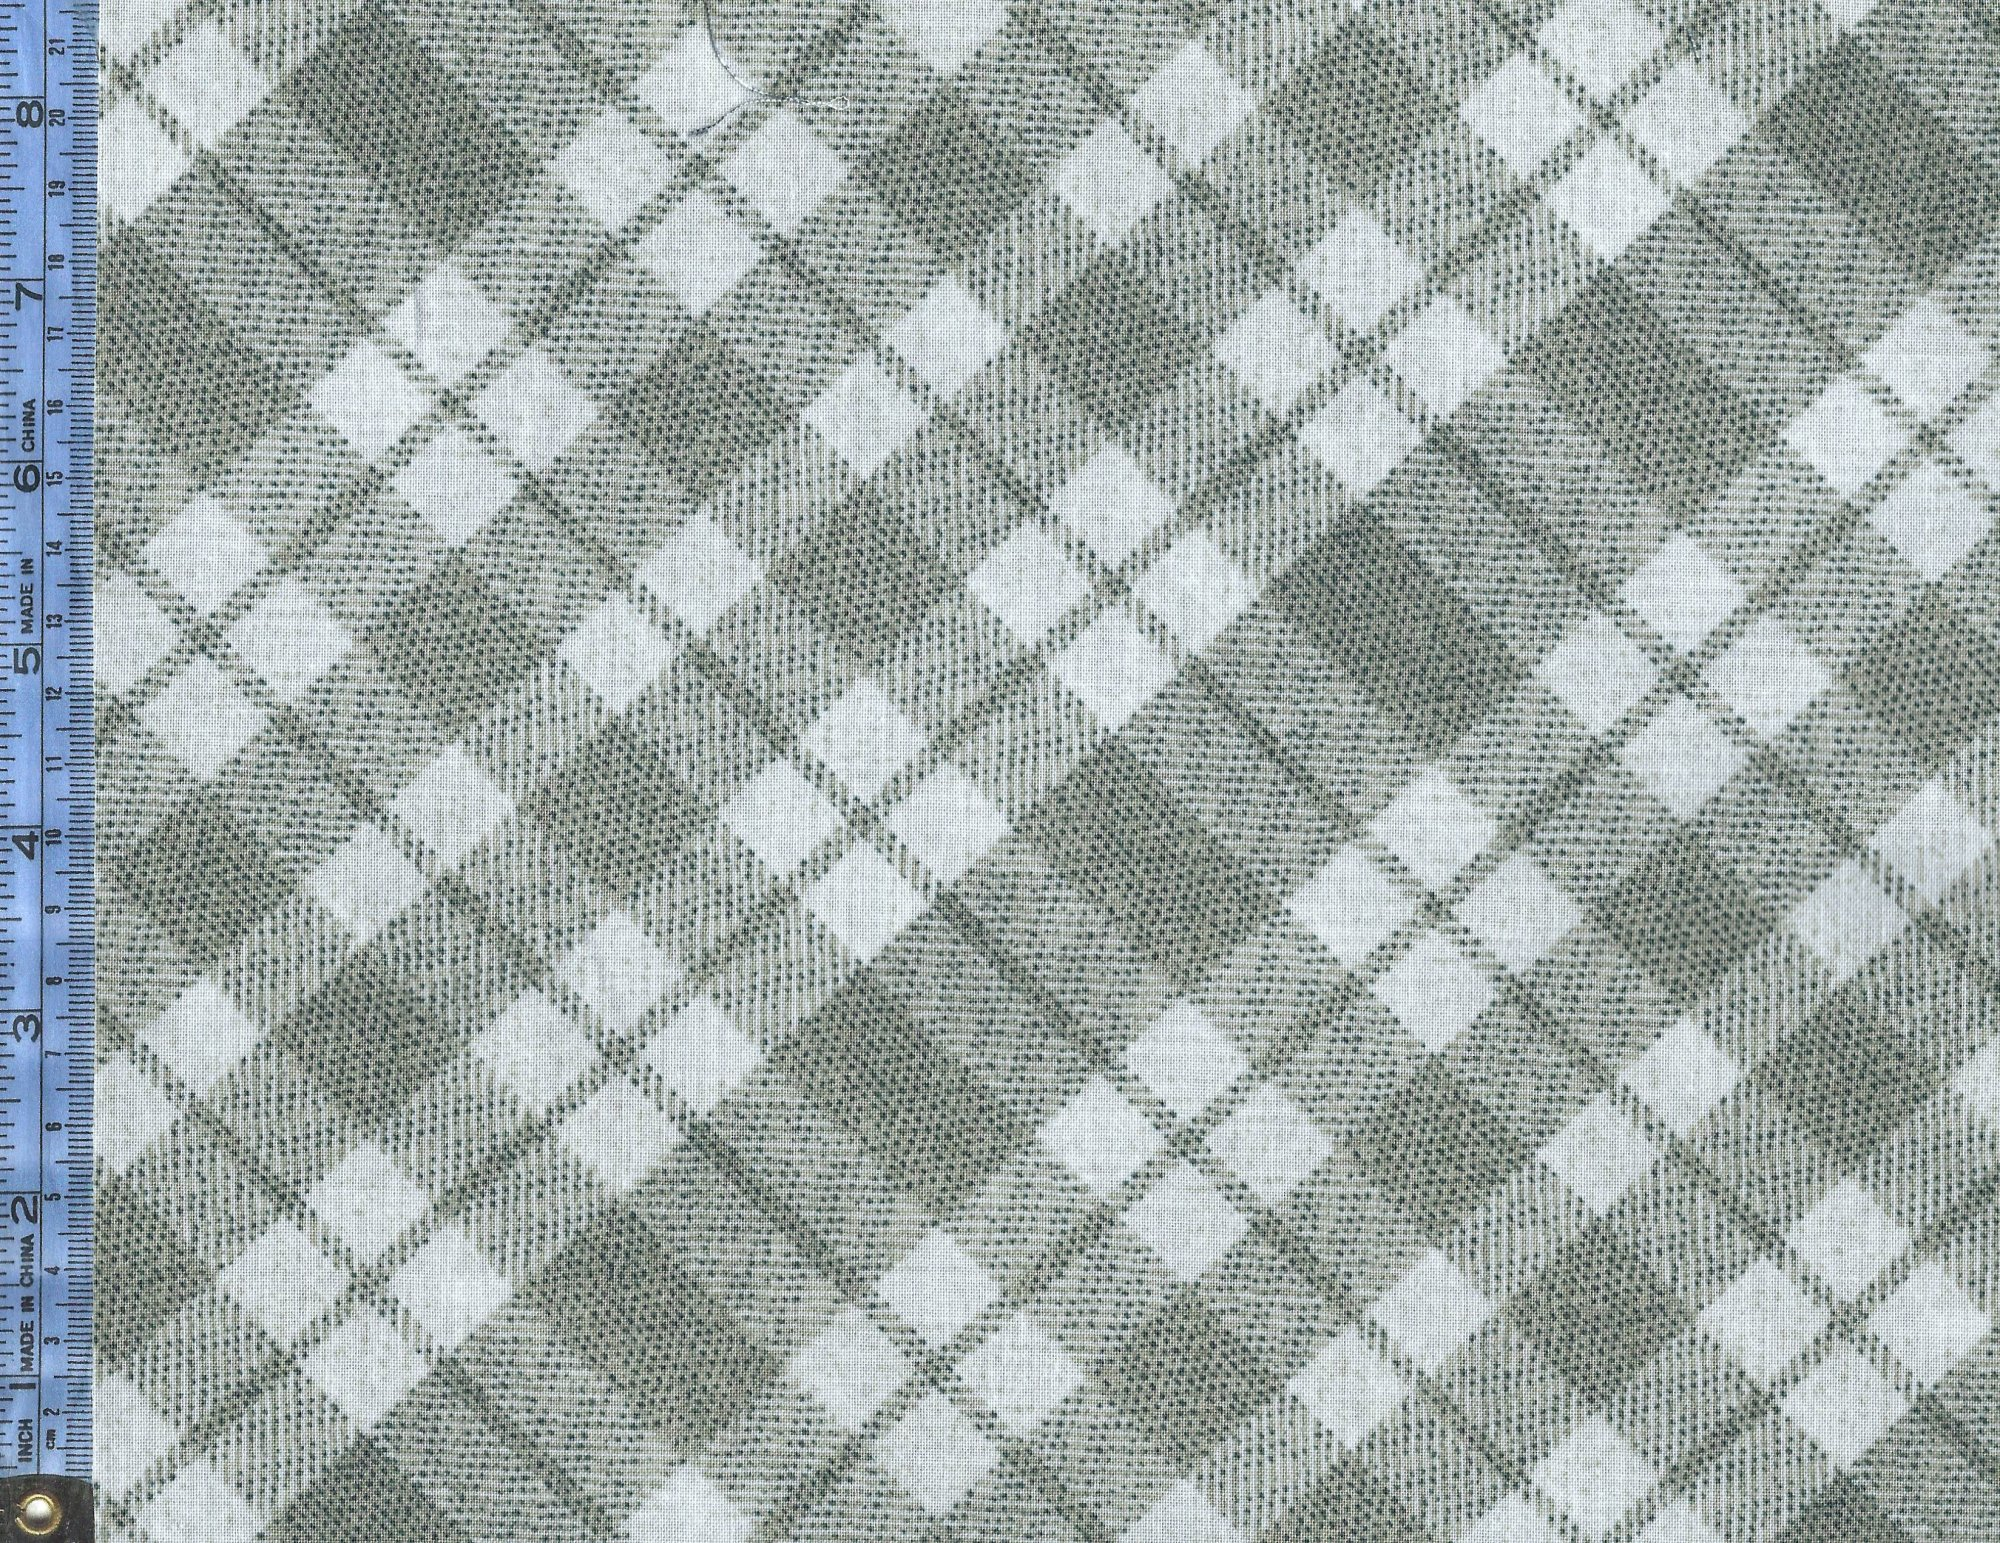 Into the Woods II - (8724-79) light taupe and light gray plaid